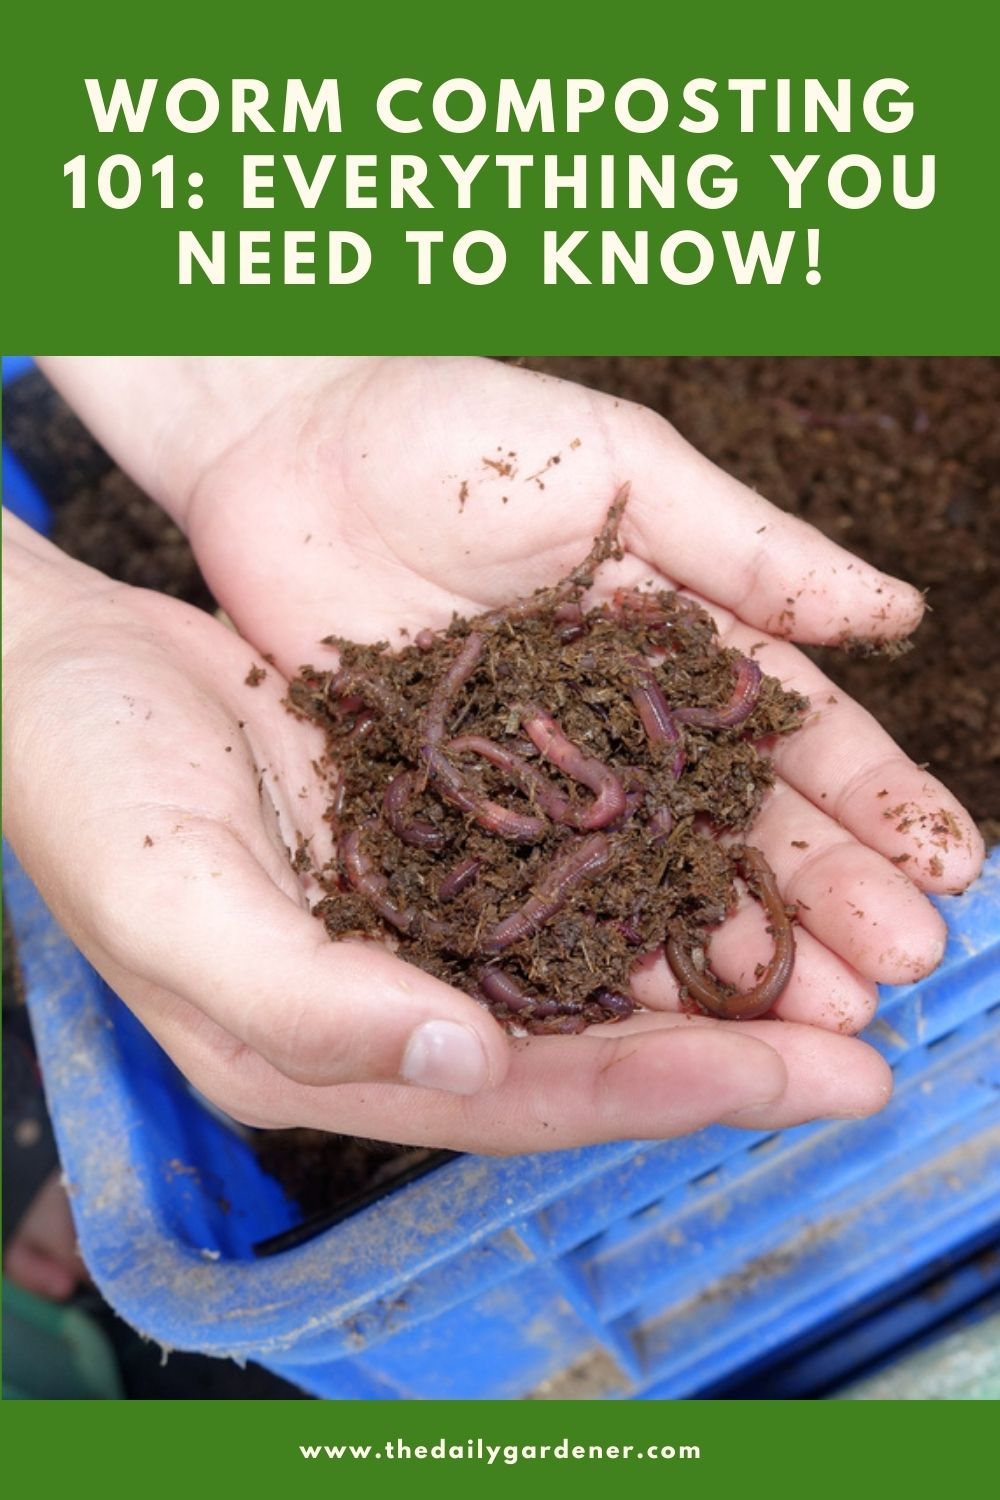 Worm Composting 101 Everything You Need to Know! 1